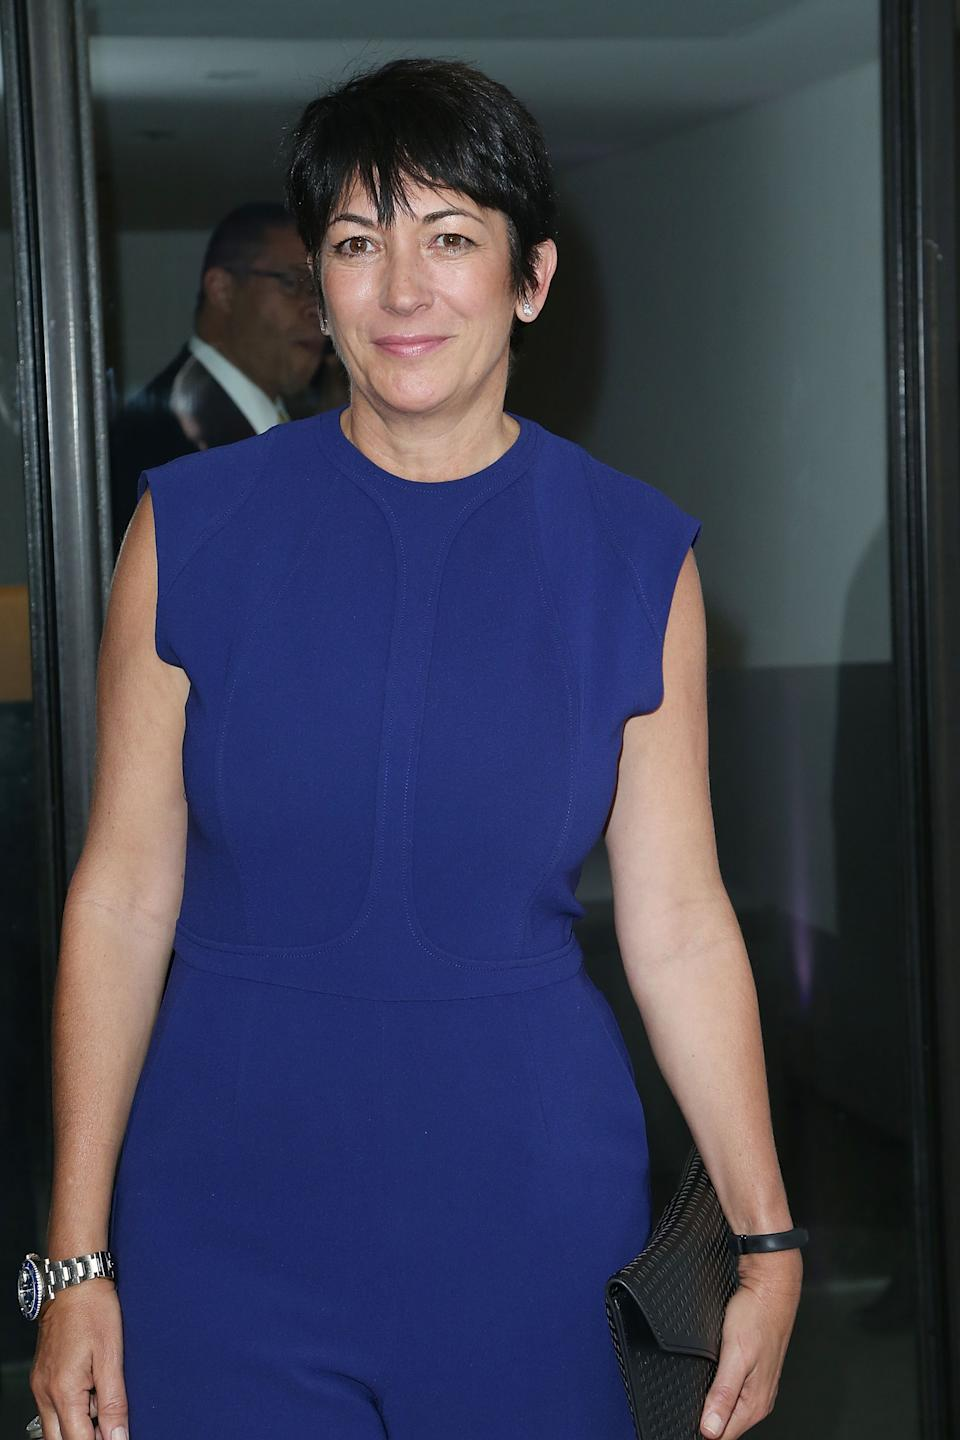 Ghislaine Maxwell pictured in 2016 in New York City. Source: Getty Images